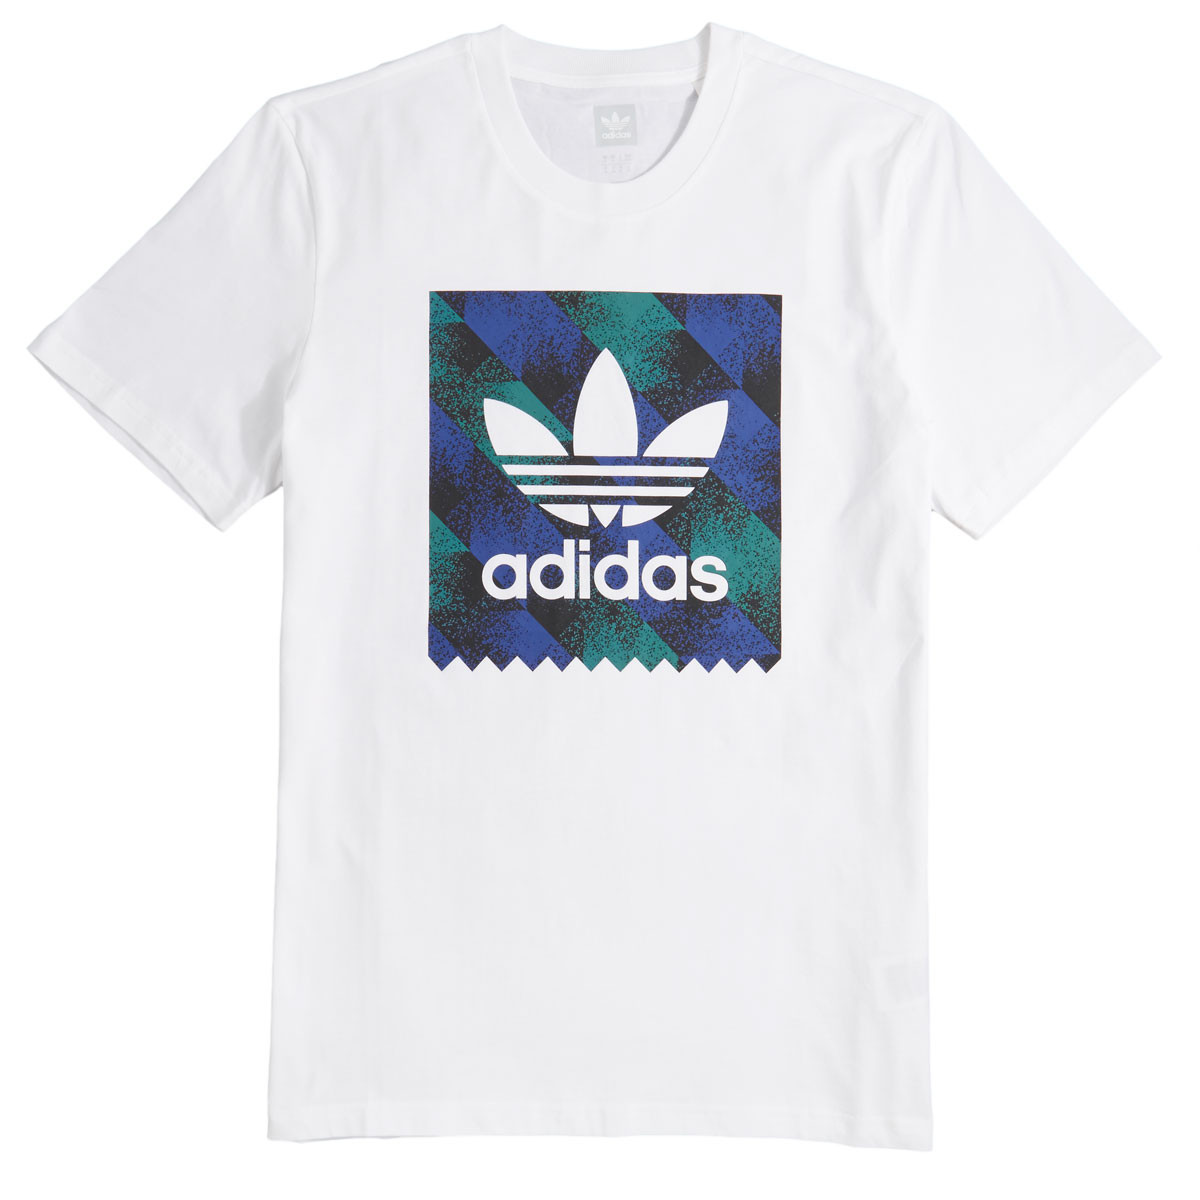 594aa08d6 Adidas Towning BB T-Shirt - White/Black/Action Blue/Action Green